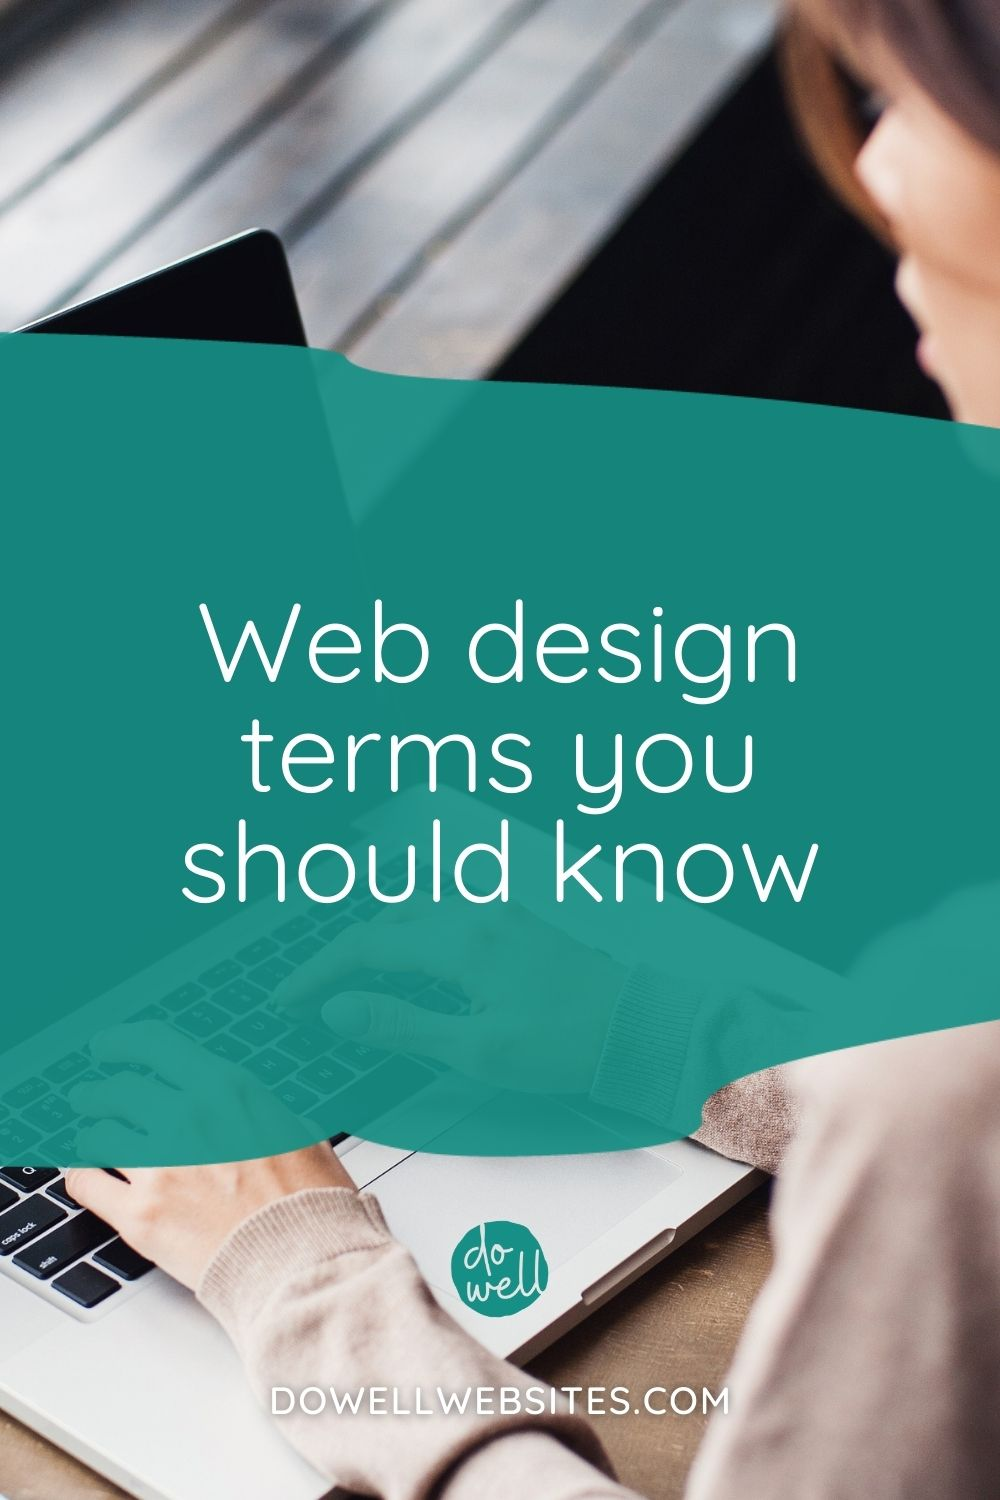 When you're tasked with creating a website for your business, you'll soon realize there's a whole new vocab to learn. Here's the basics that you need to know.